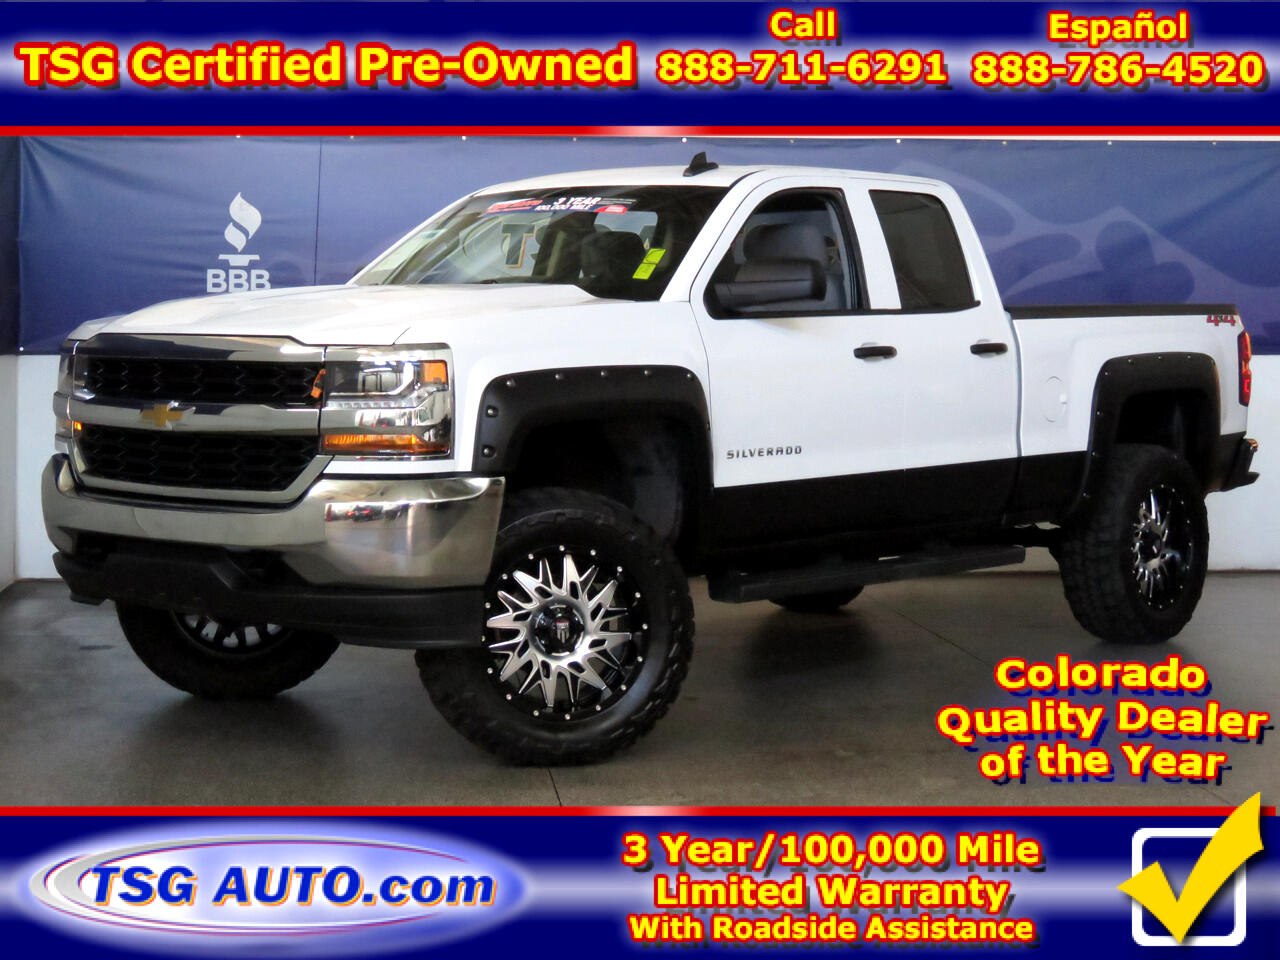 2018 Chevrolet Silverado 1500 4WD Double Cab W/Custom lift/Wheels/Tires